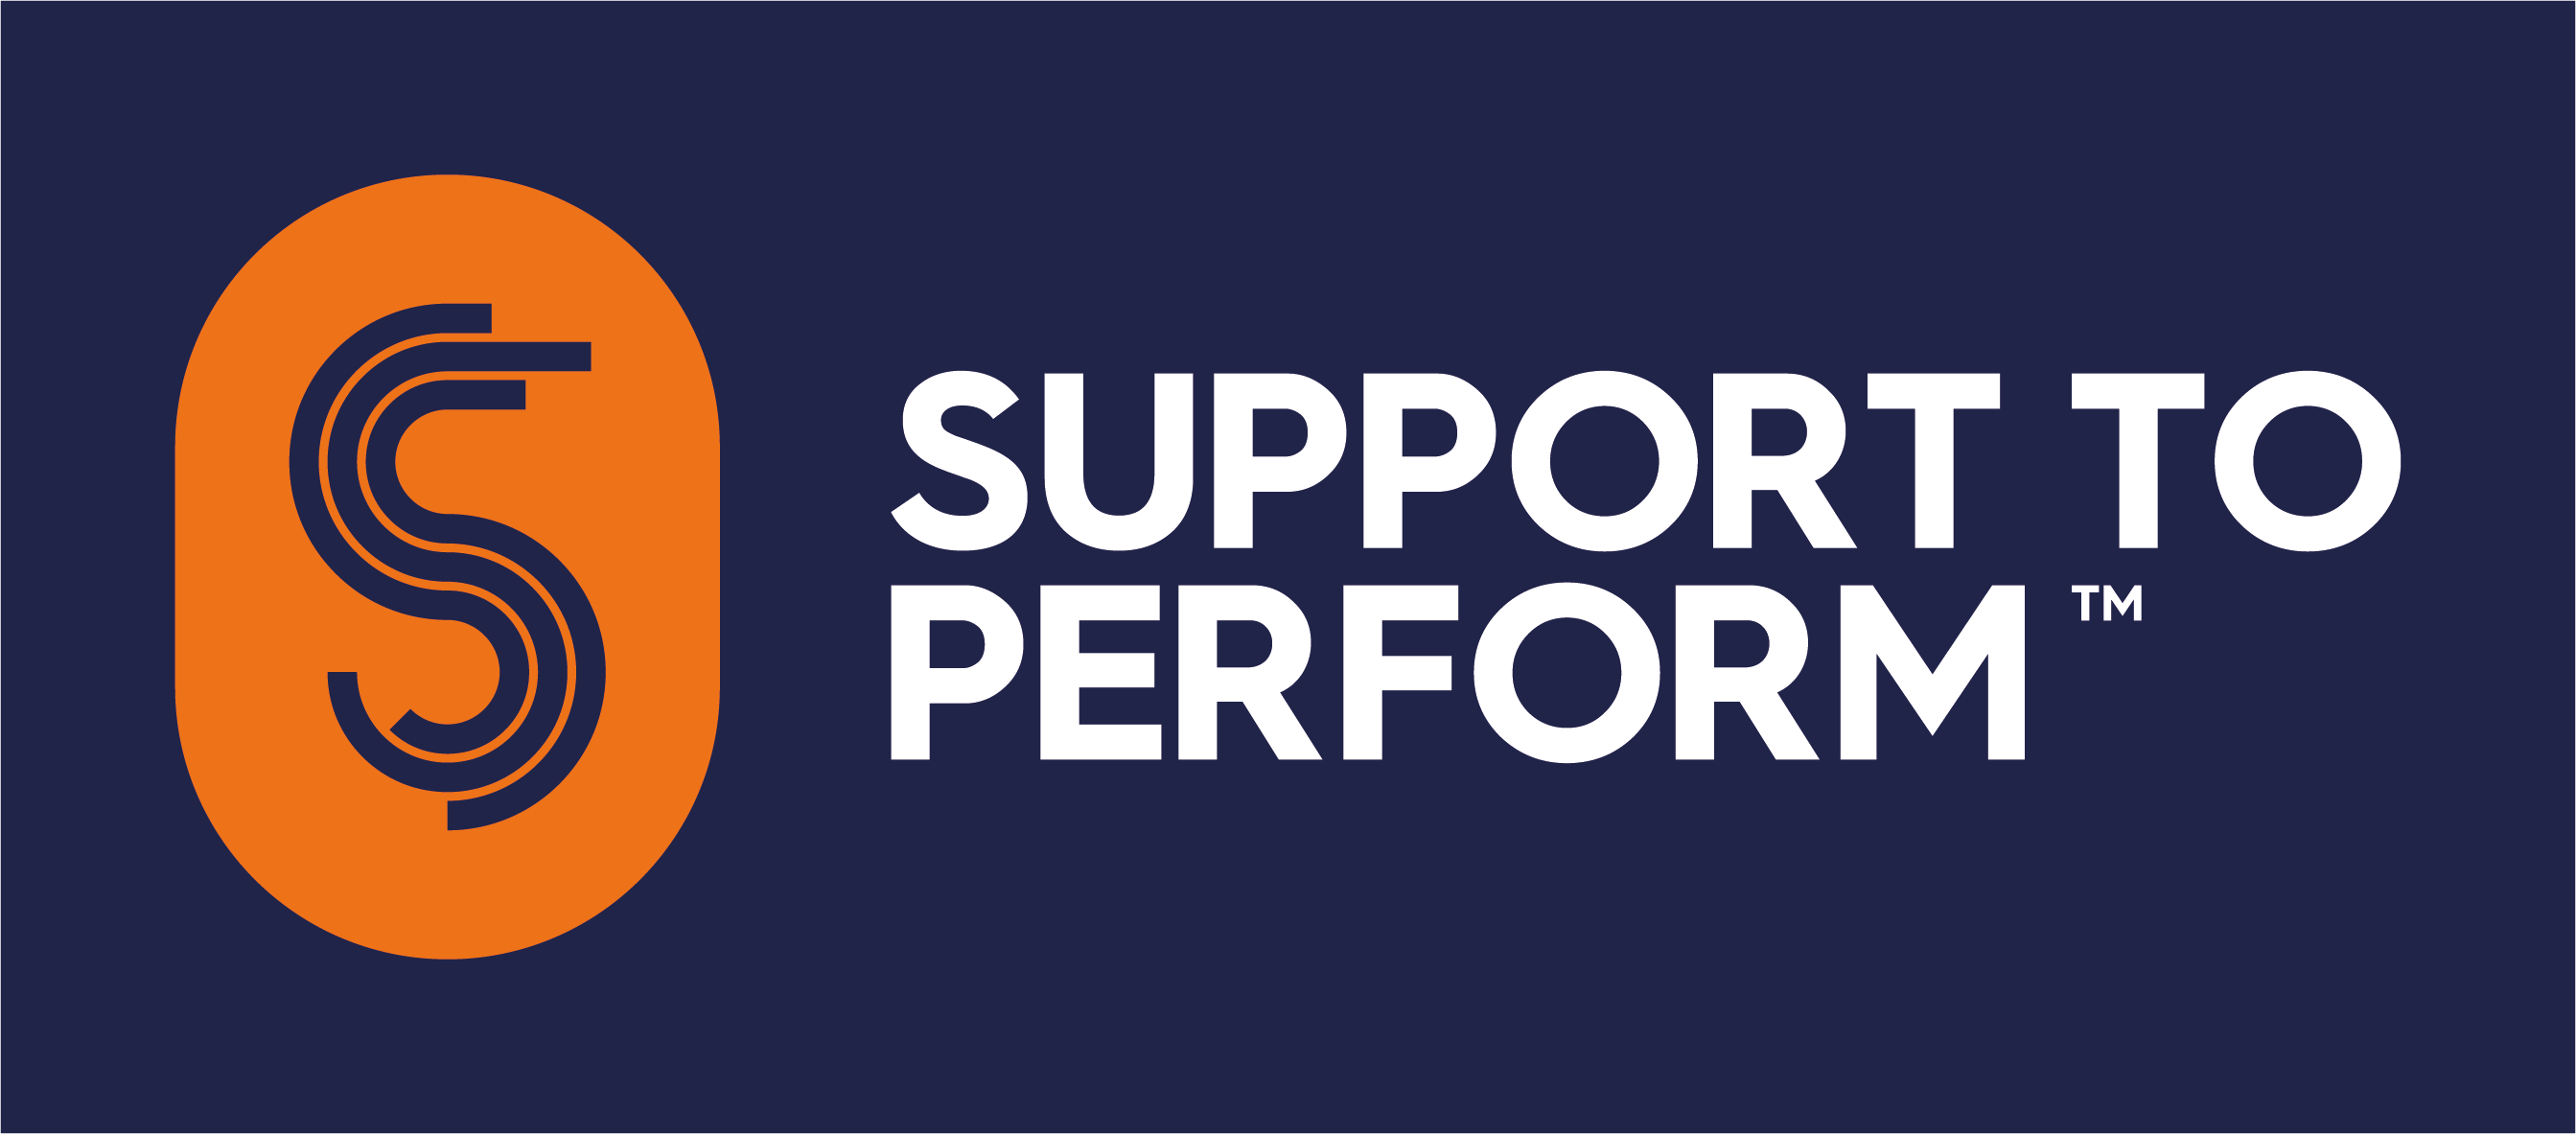 Support to Perform logo